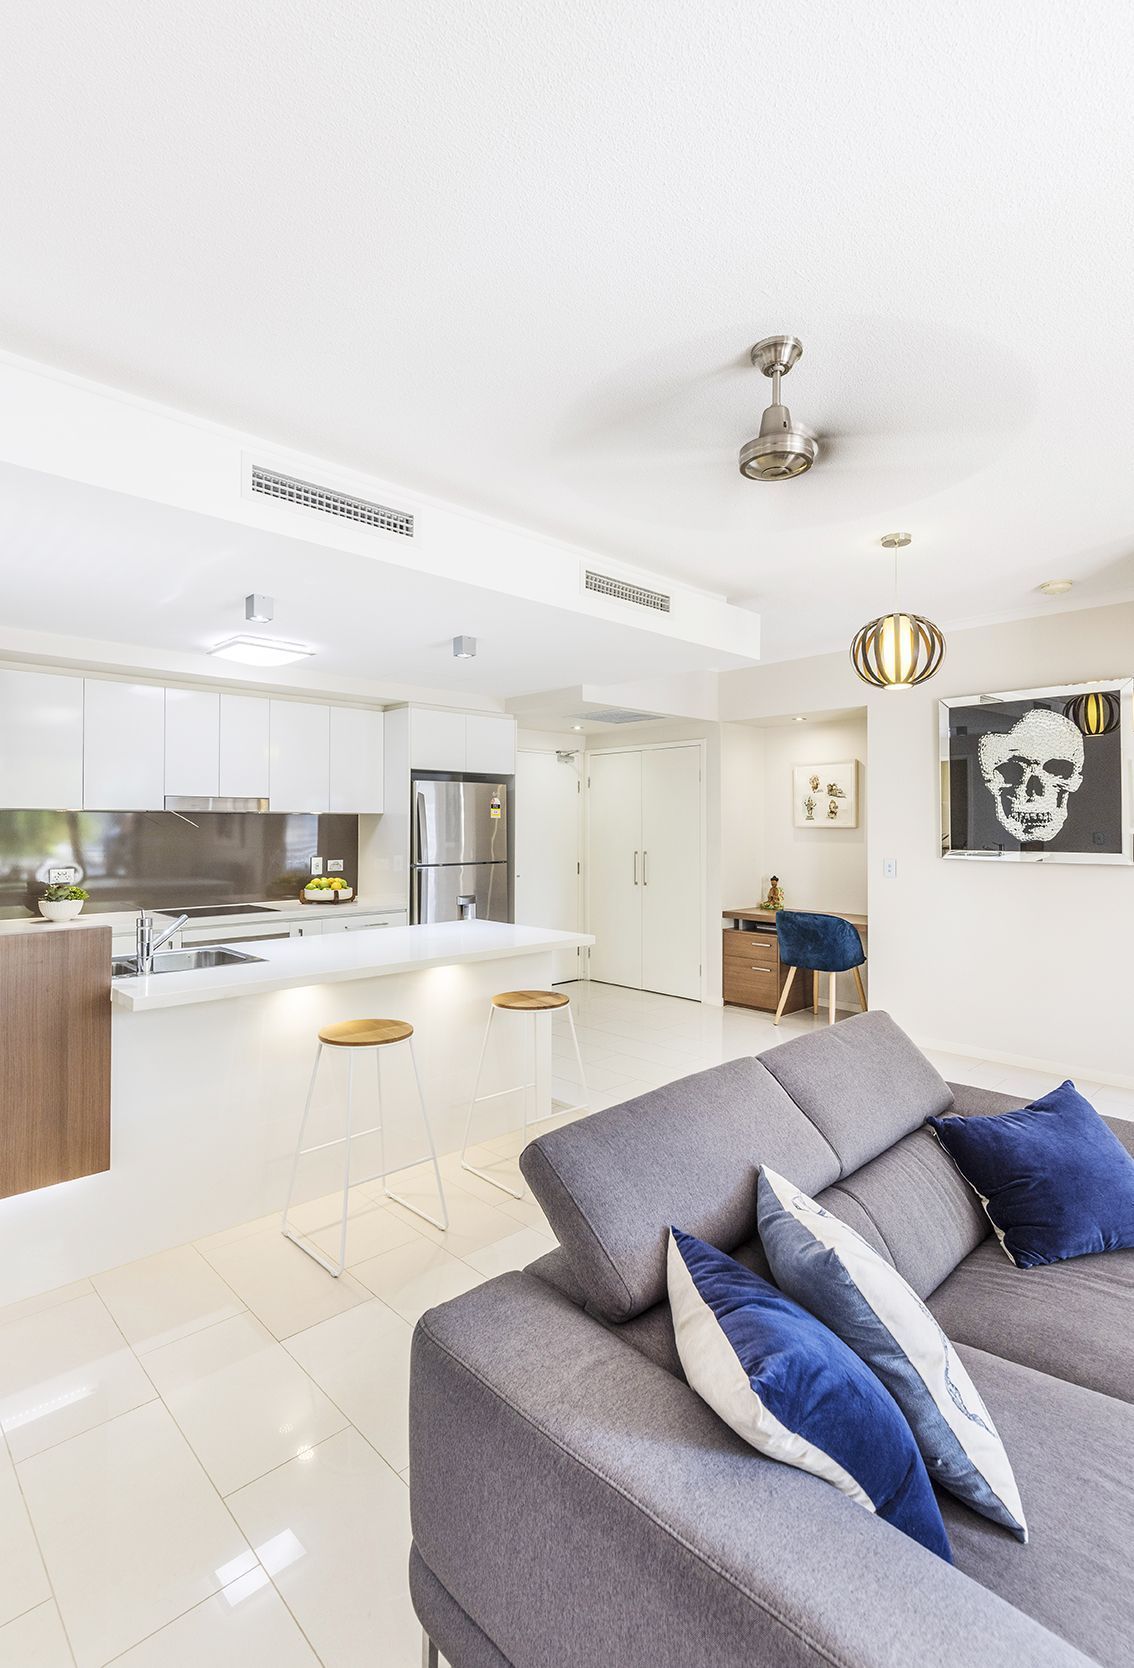 BULIMBA 818 Barramul Street this north facing